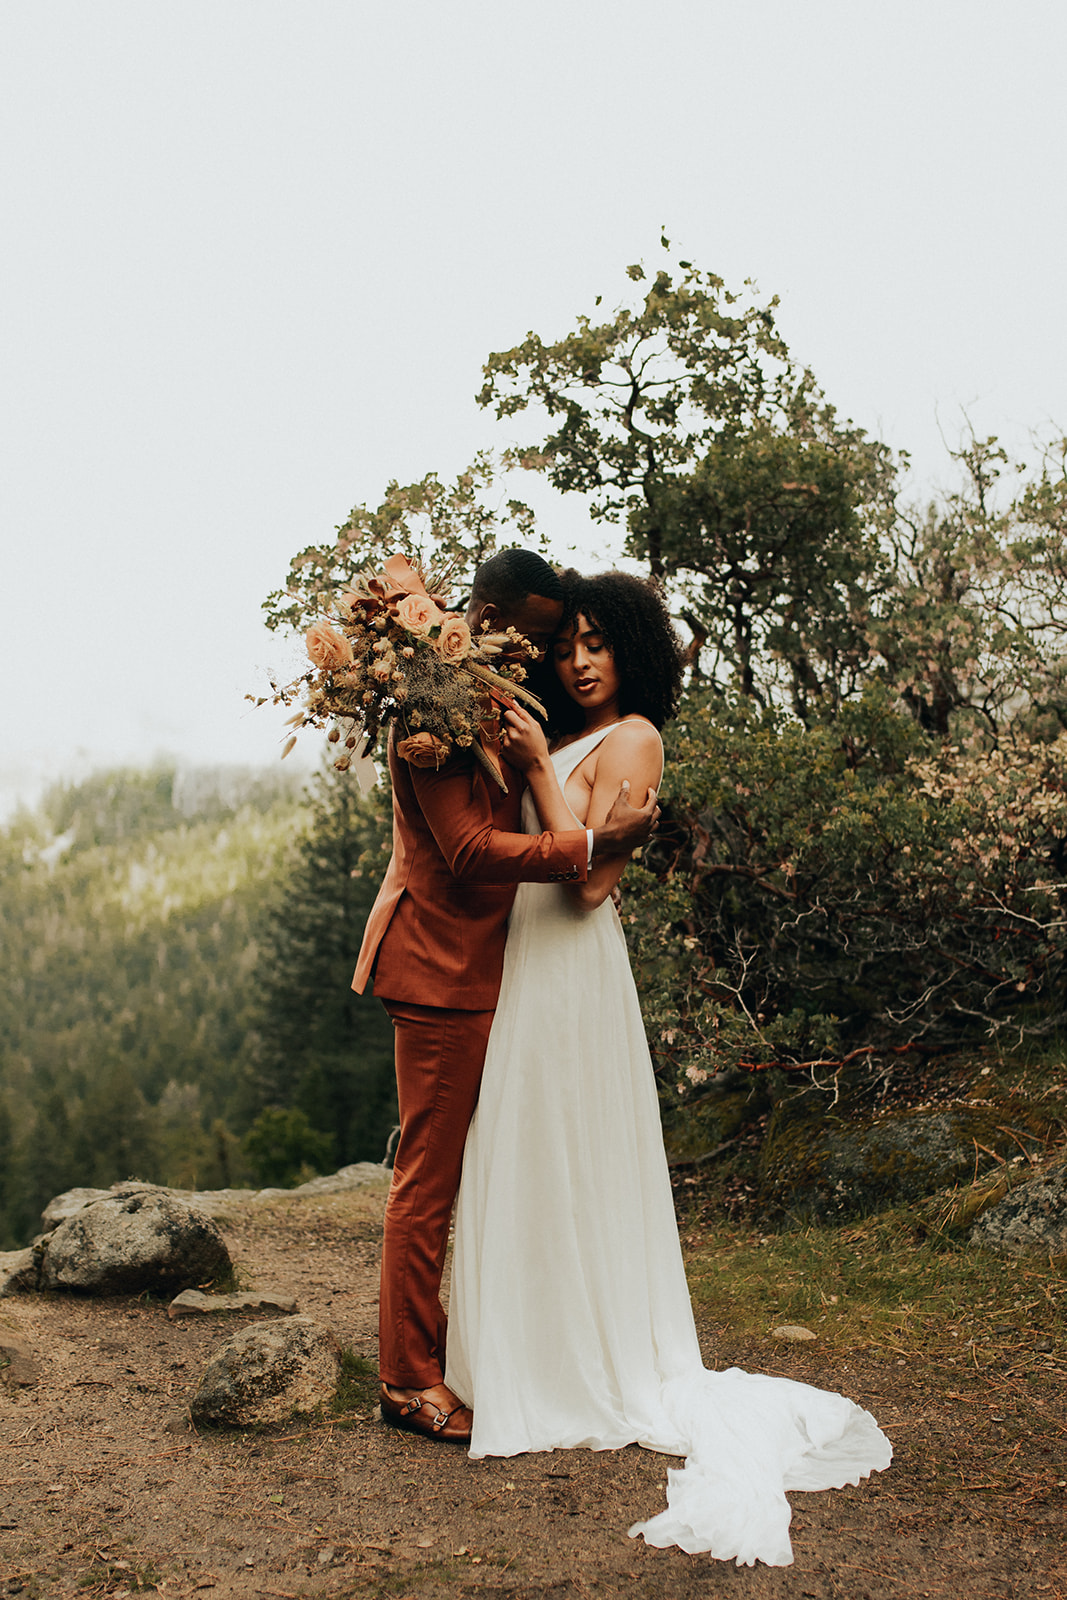 Yosemite_Elopement_Hannah_Alena_Photo_Portland_Wedding_Photographer-82.jpg